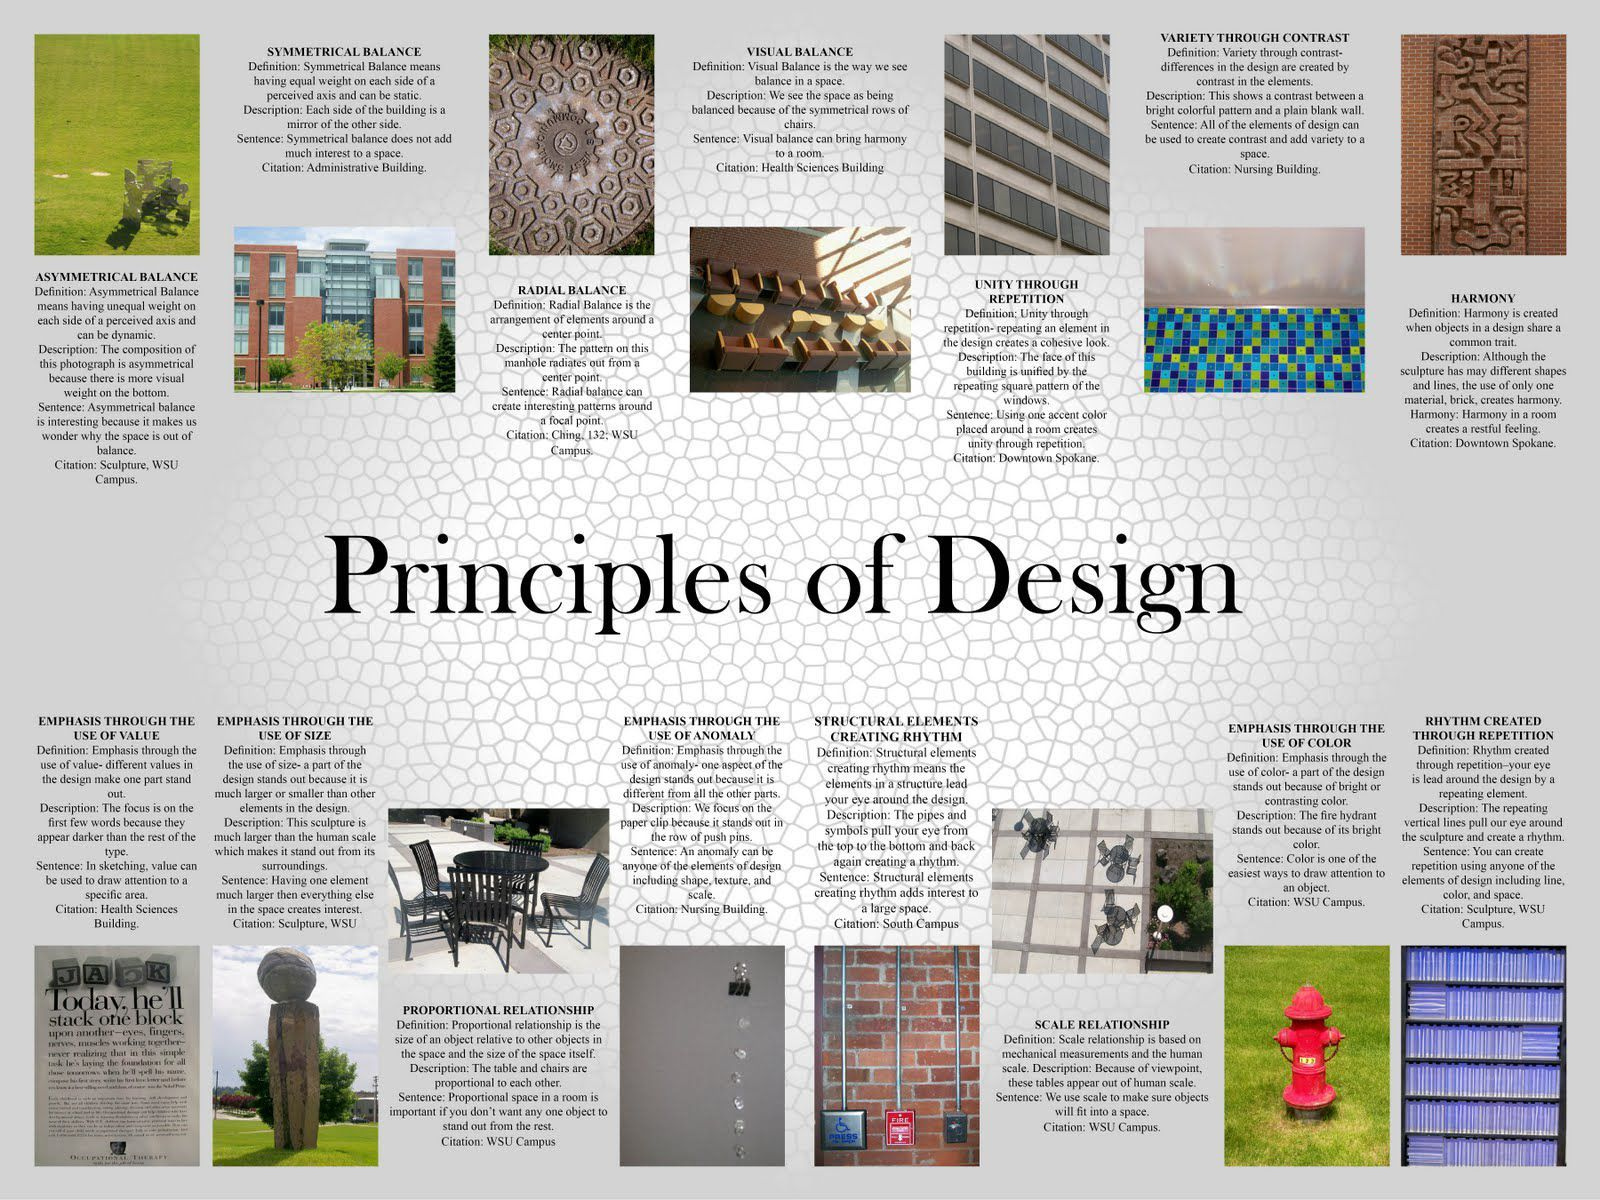 Principles And Elements Of Interior Design Gandum Principles Of Design Elements Of Design Interior Design Elements